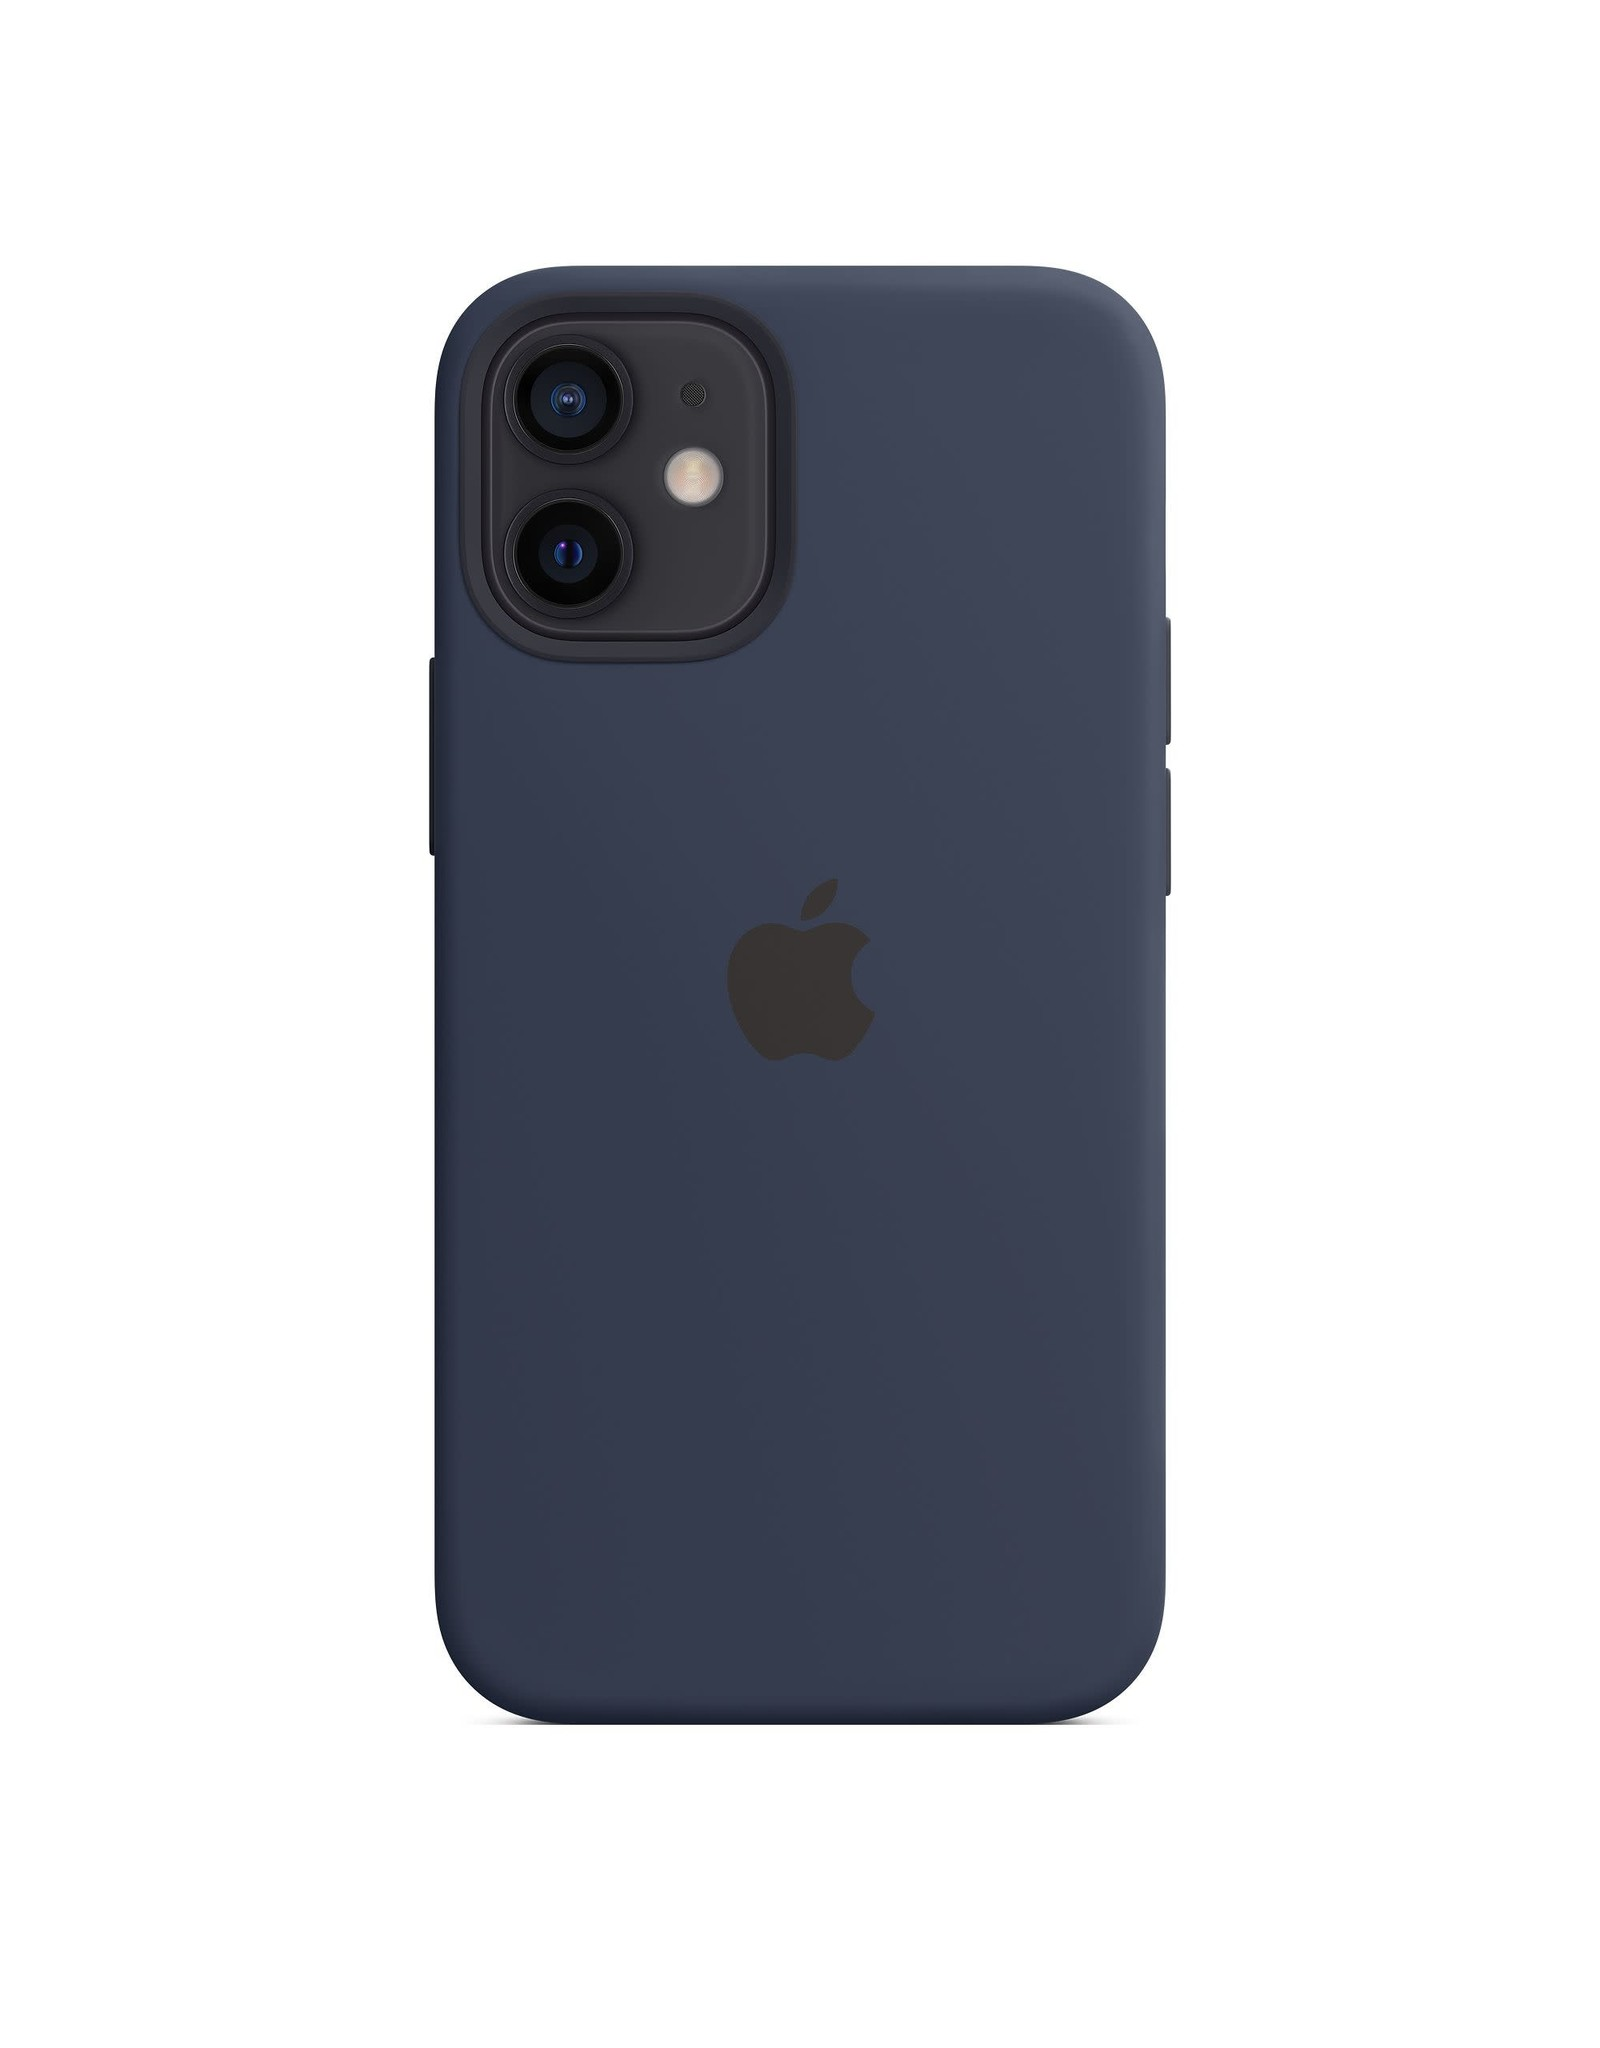 Apple Apple iPhone 12 mini Silicone Case with MagSafe - Deep Navy